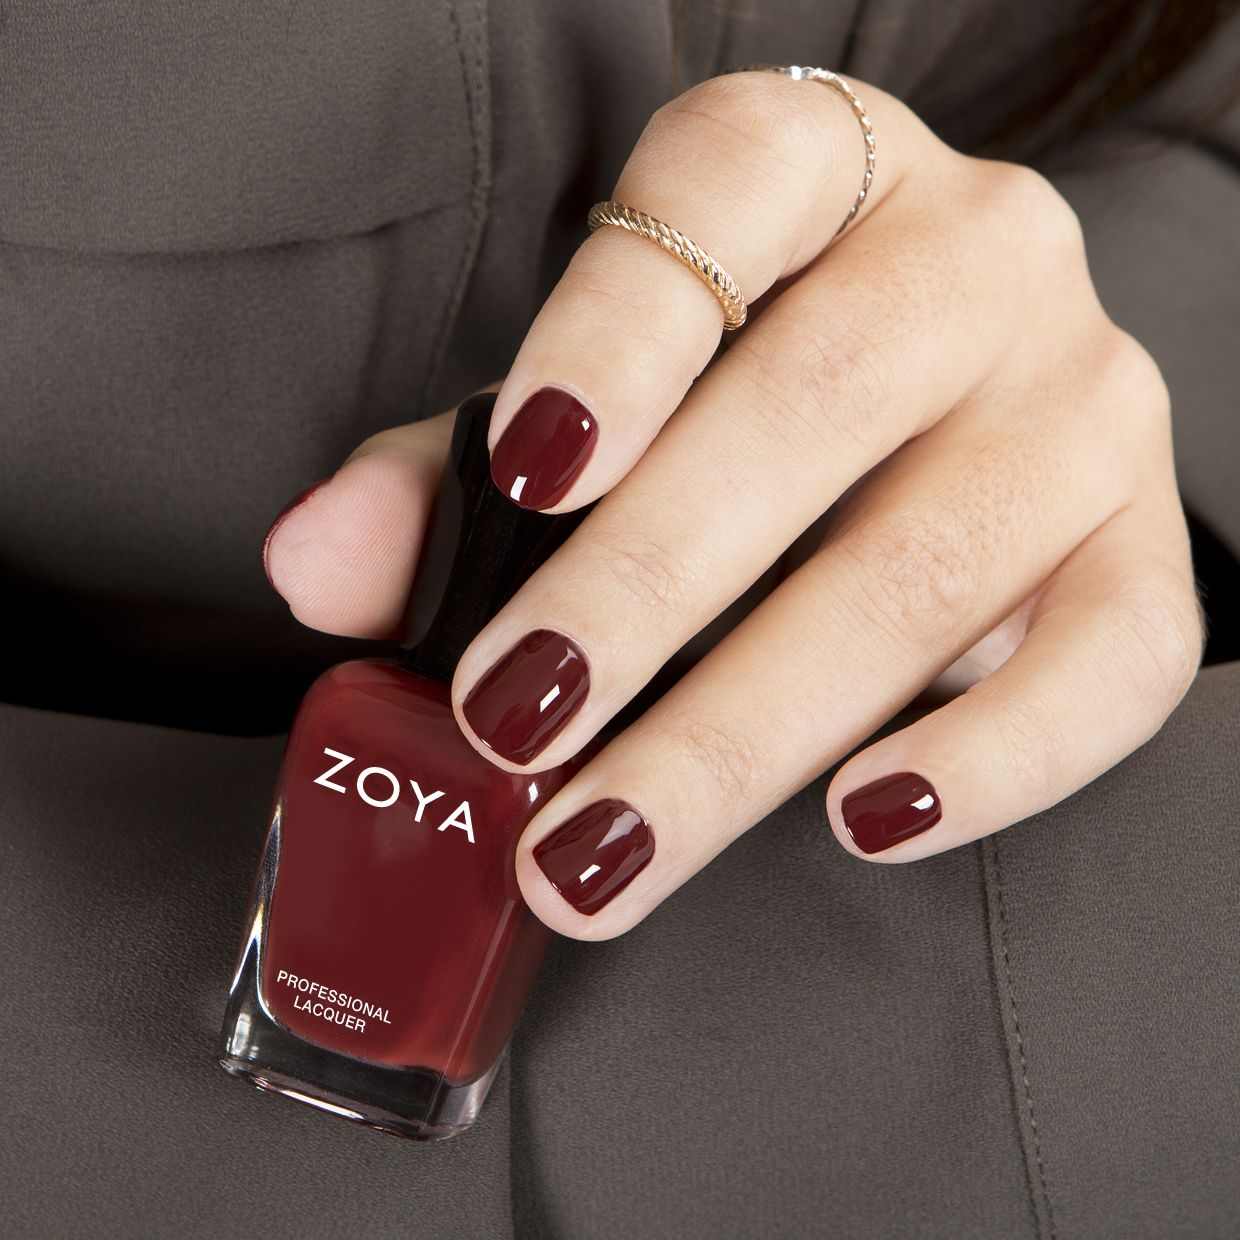 Zoya Pepper Marsala Nail Polish | nails | Pinterest | Pepper, Makeup ...